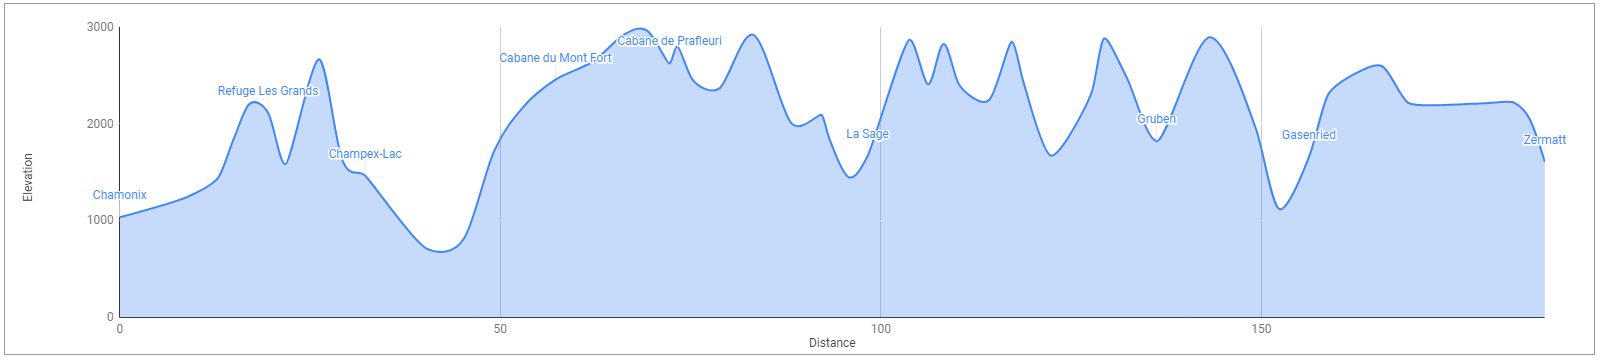 Haute Route Hike: Elevation profile for our self-guided journey with just under 12,000m (40,000ft) in elevation change across 11 mountain passes.